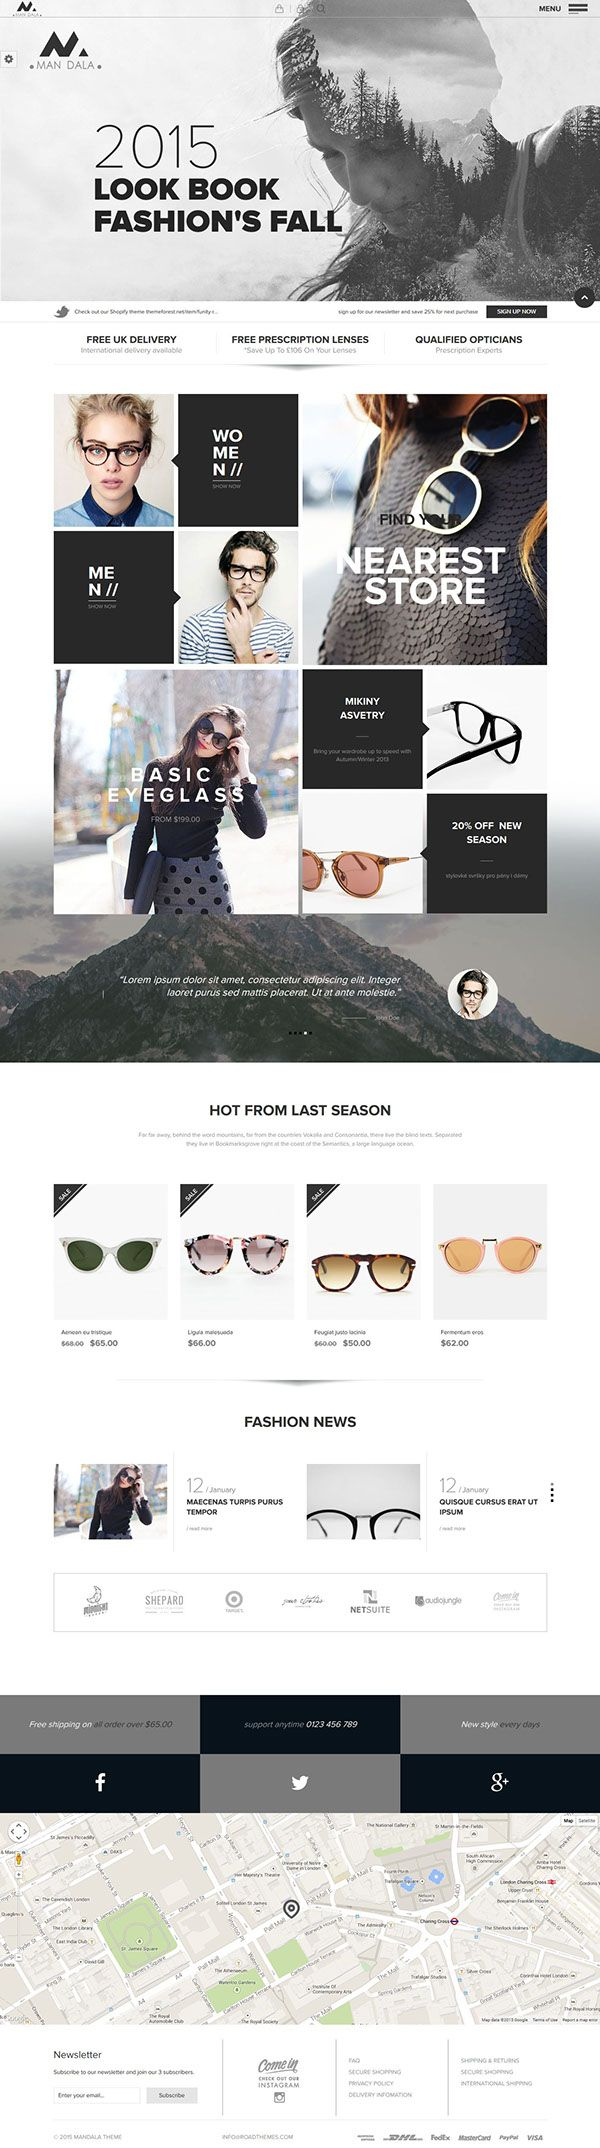 Mandala - Responsive Ecommerce Wordpress Theme on Behance